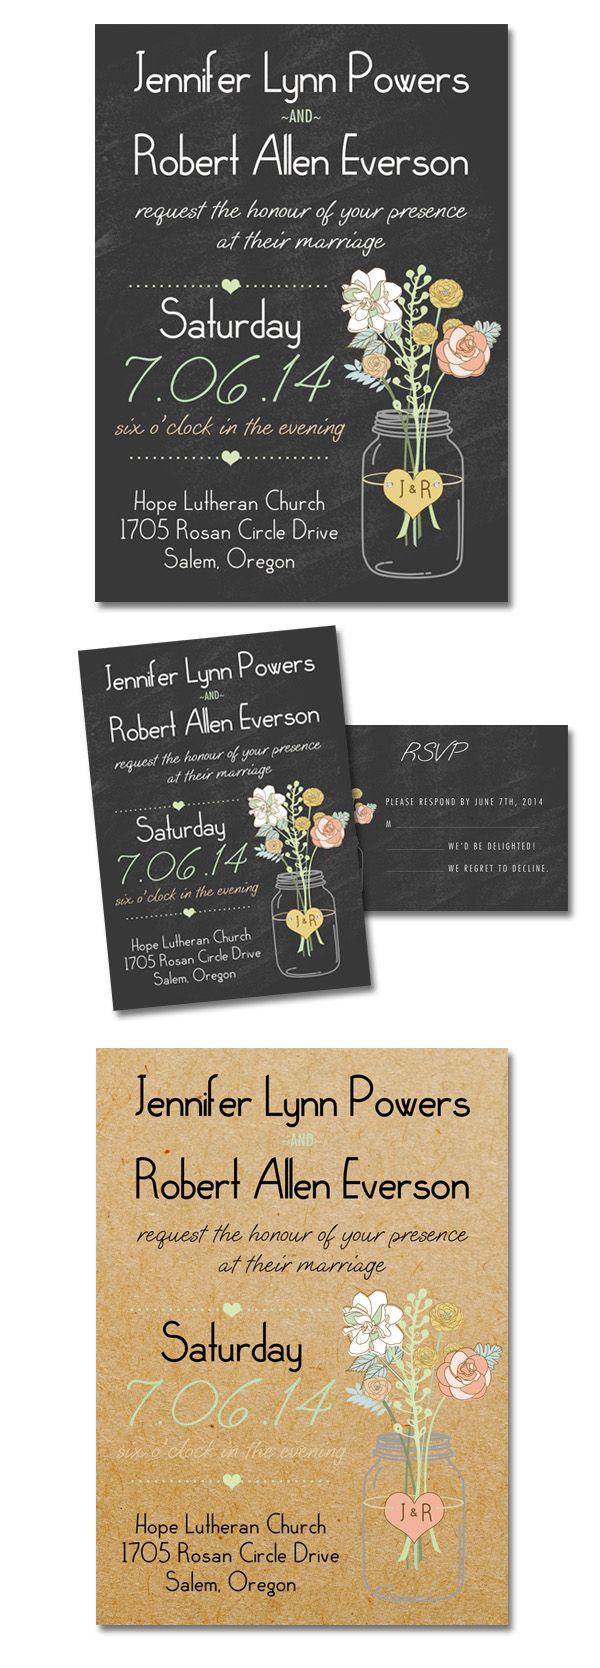 sister wedding invitation card wordings%0A boho rustic wedding invitations mason jars heart chalkboard EWI